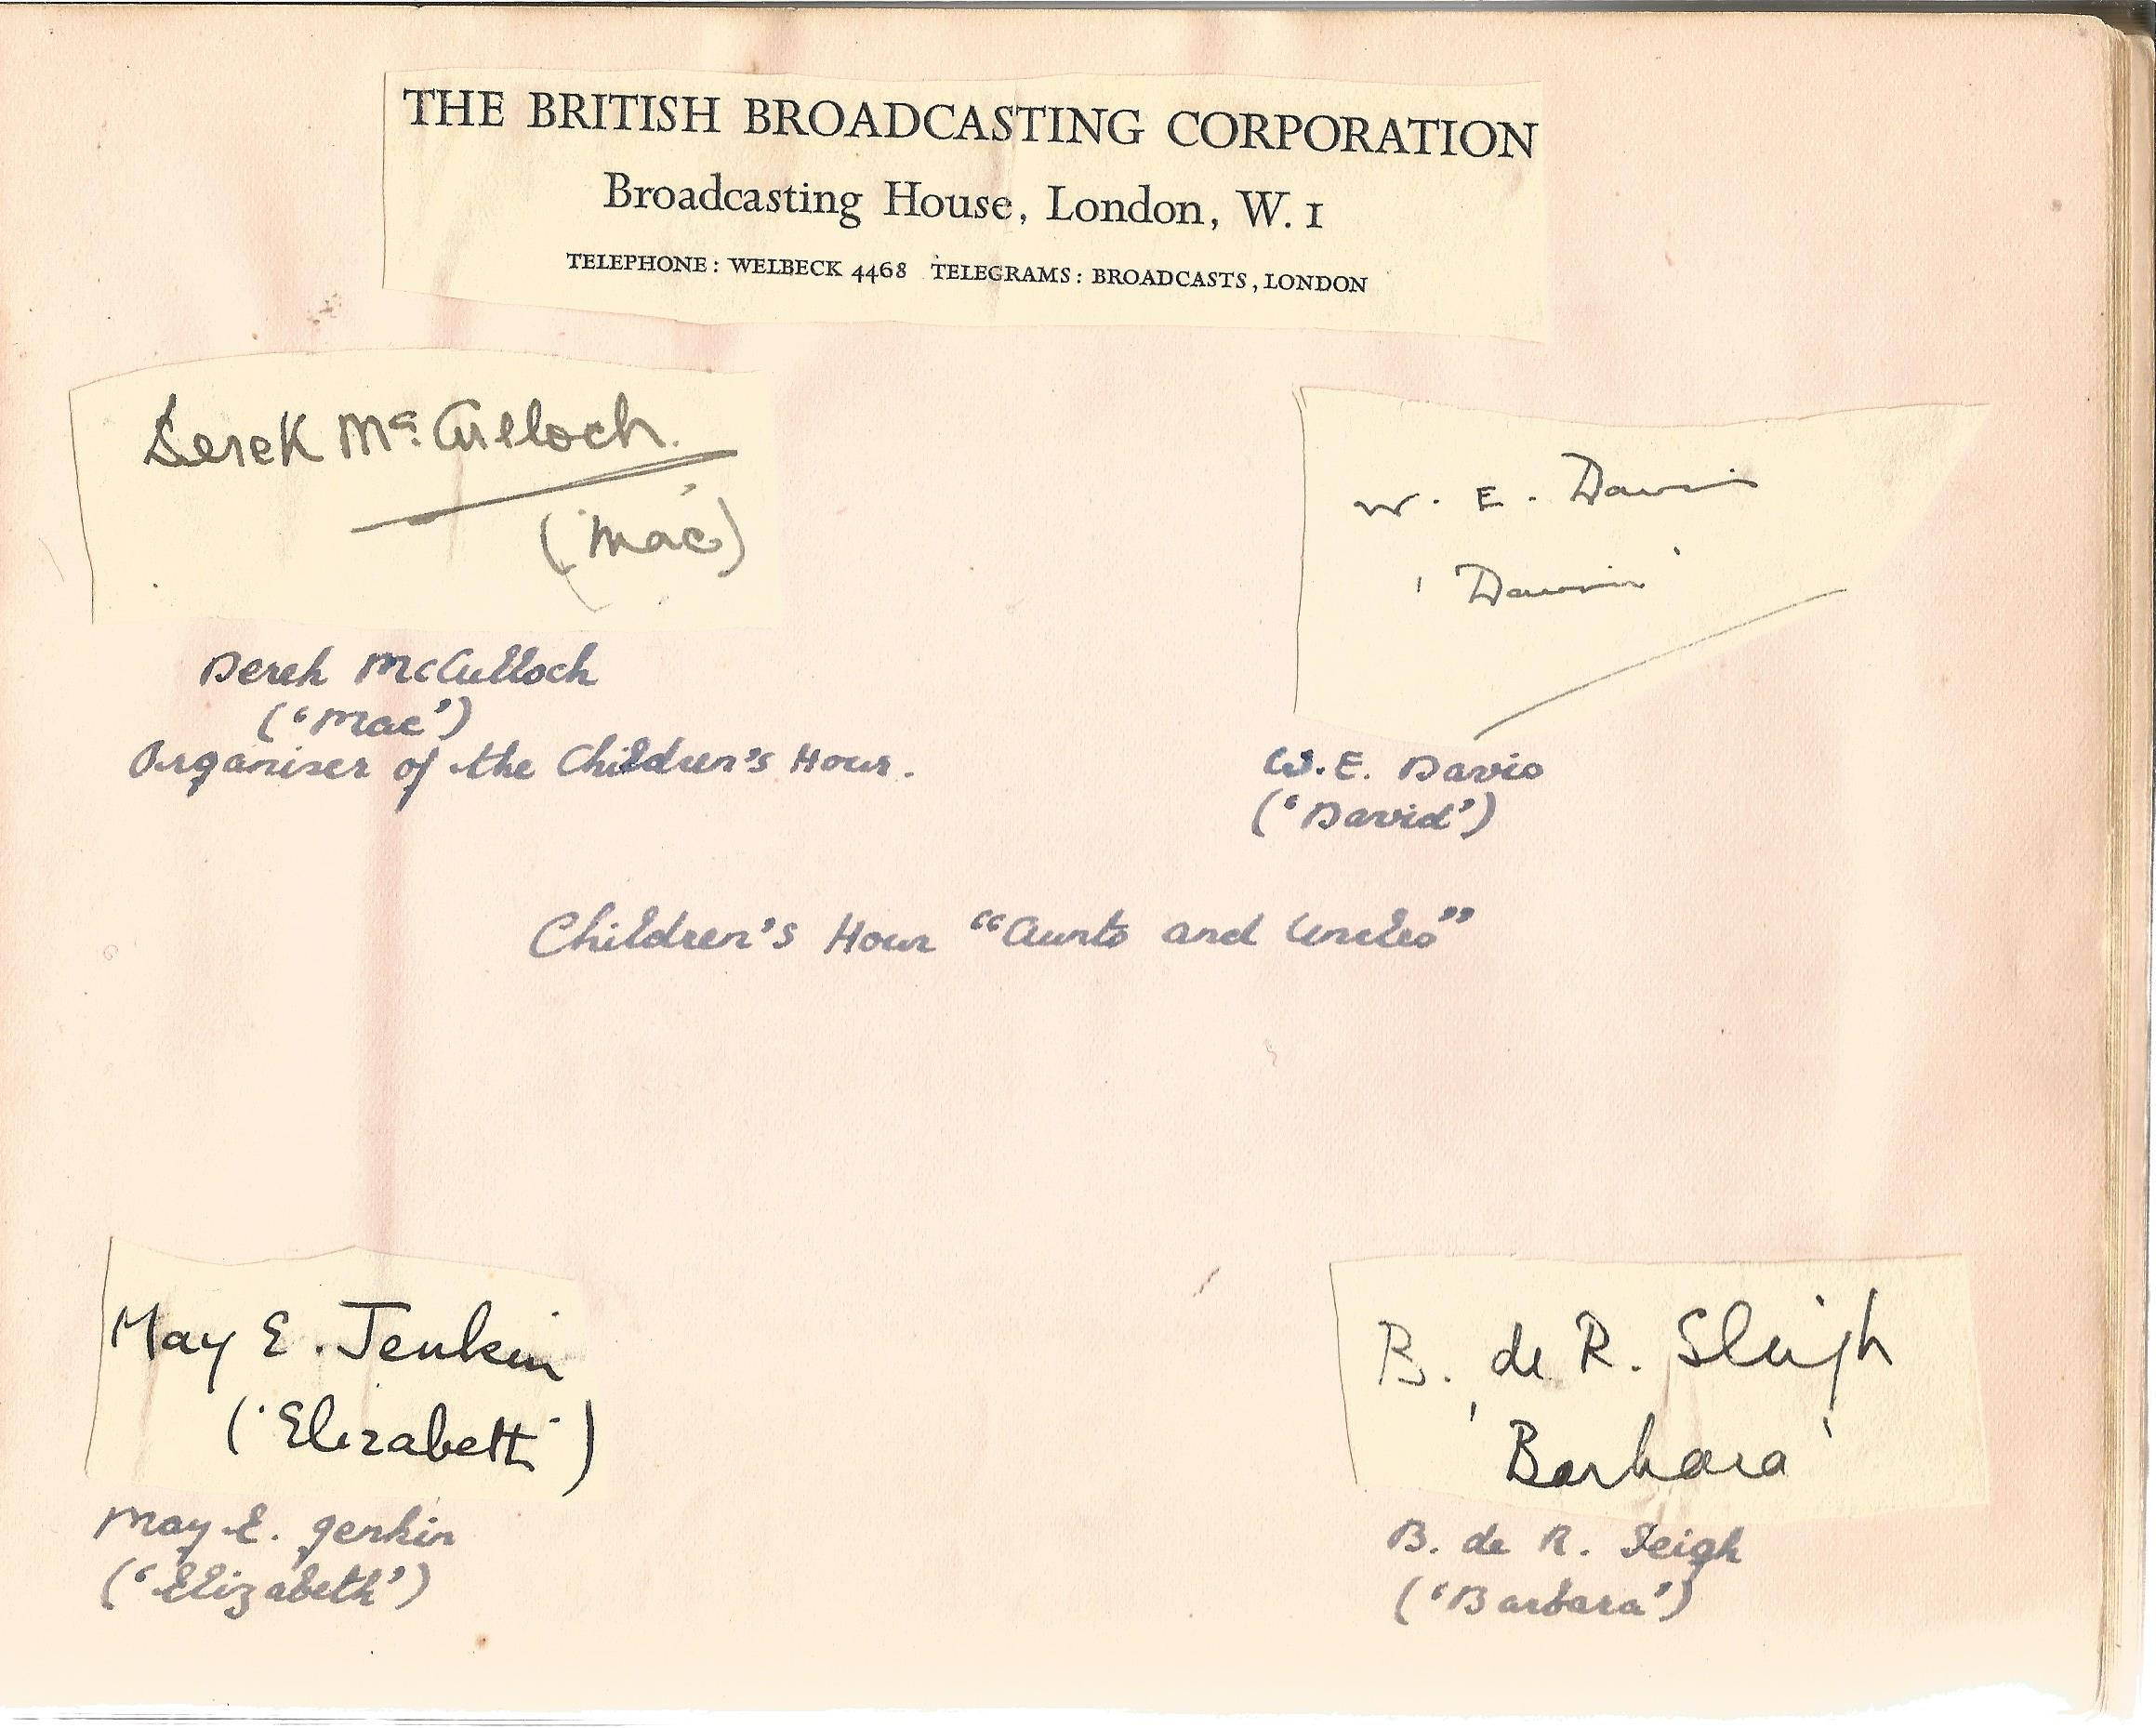 Literary autograph book collection includes some well-known names such as Sir Richard Terry, JB - Image 9 of 9